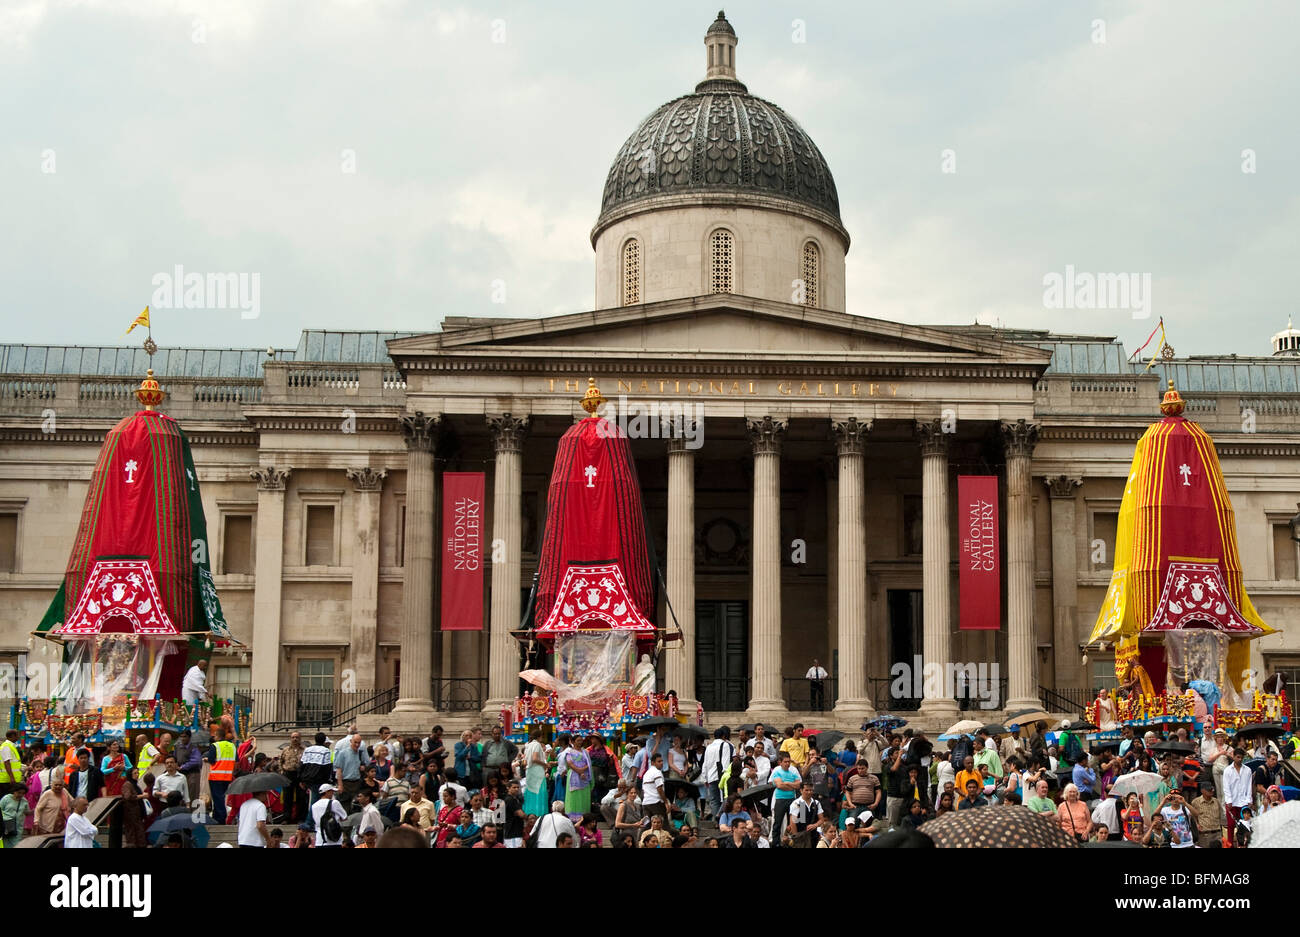 Celebrations of Ratha Yatra  The Hindu festival of chariots in London UK Stock Photo